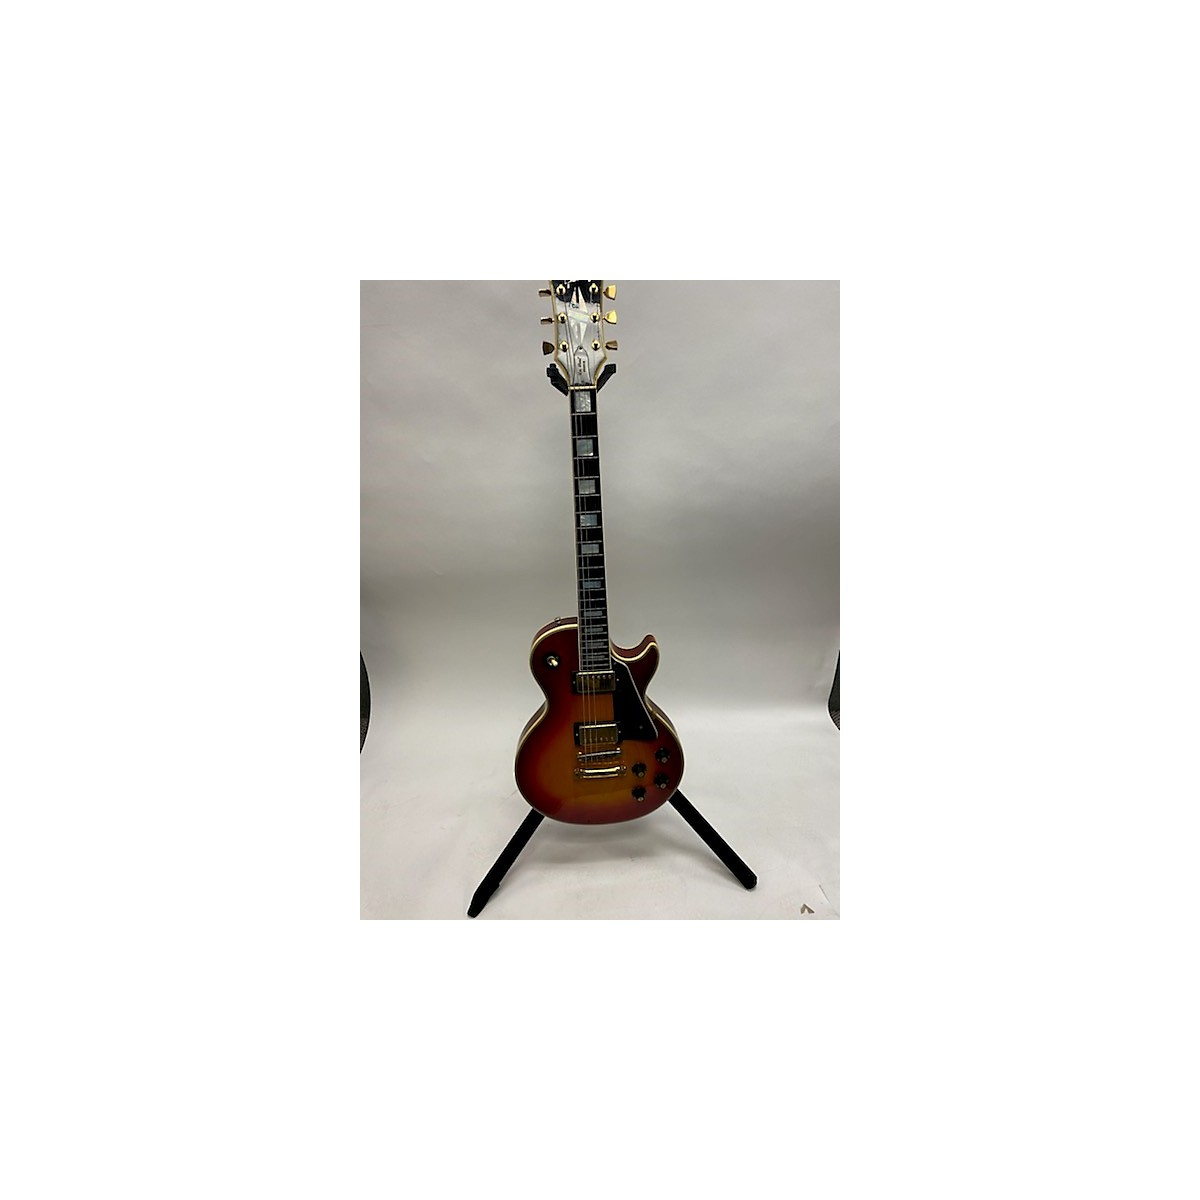 Gibson 1973 Les Paul Custom Solid Body Electric Guitar